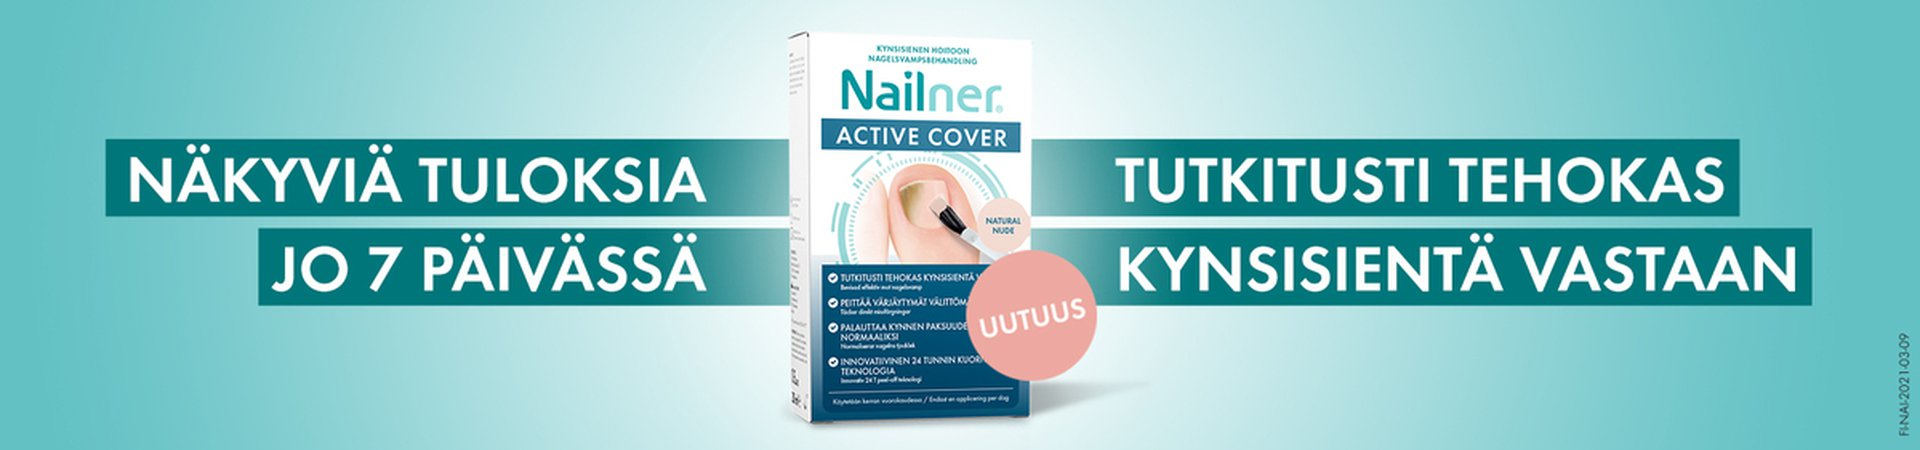 nailner active cover